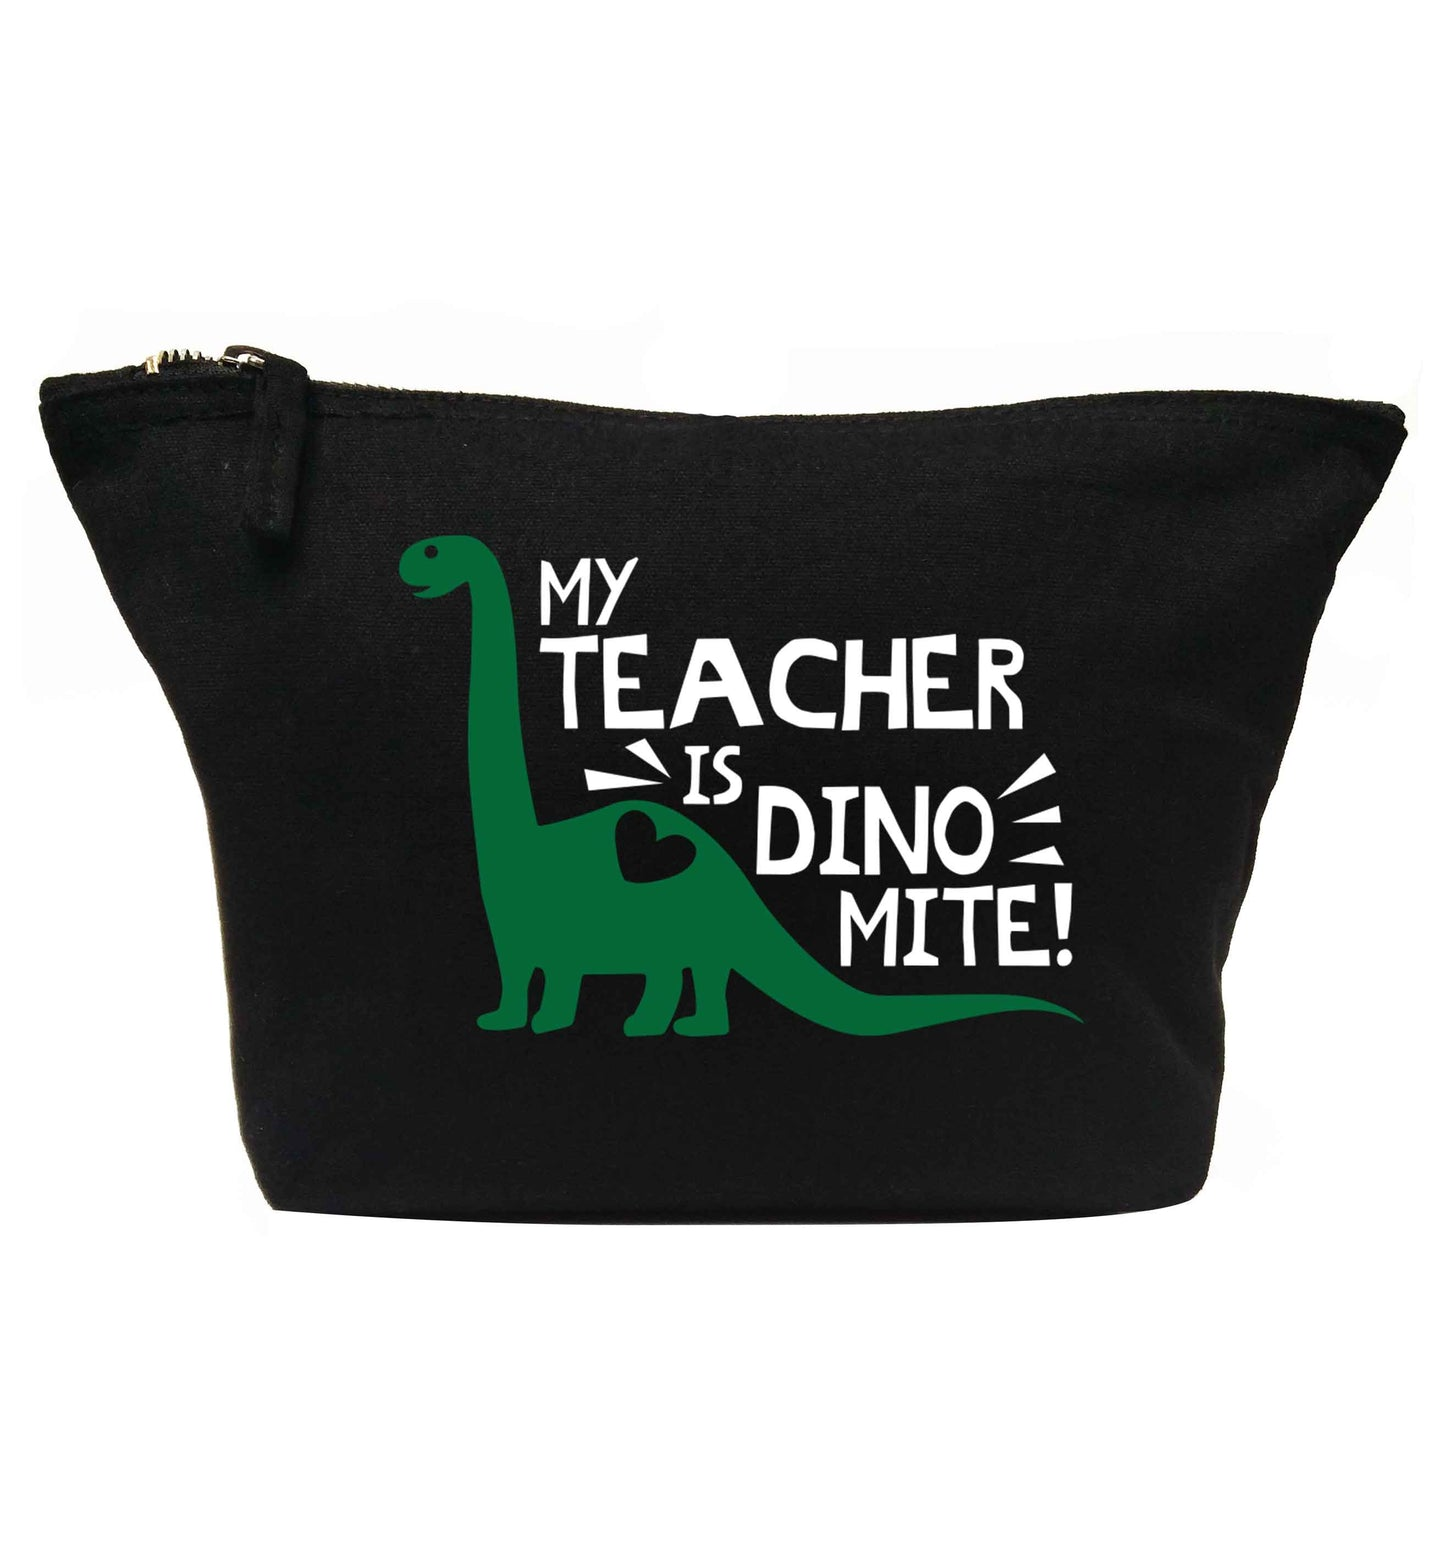 My teacher is dinomite! | makeup / wash bag